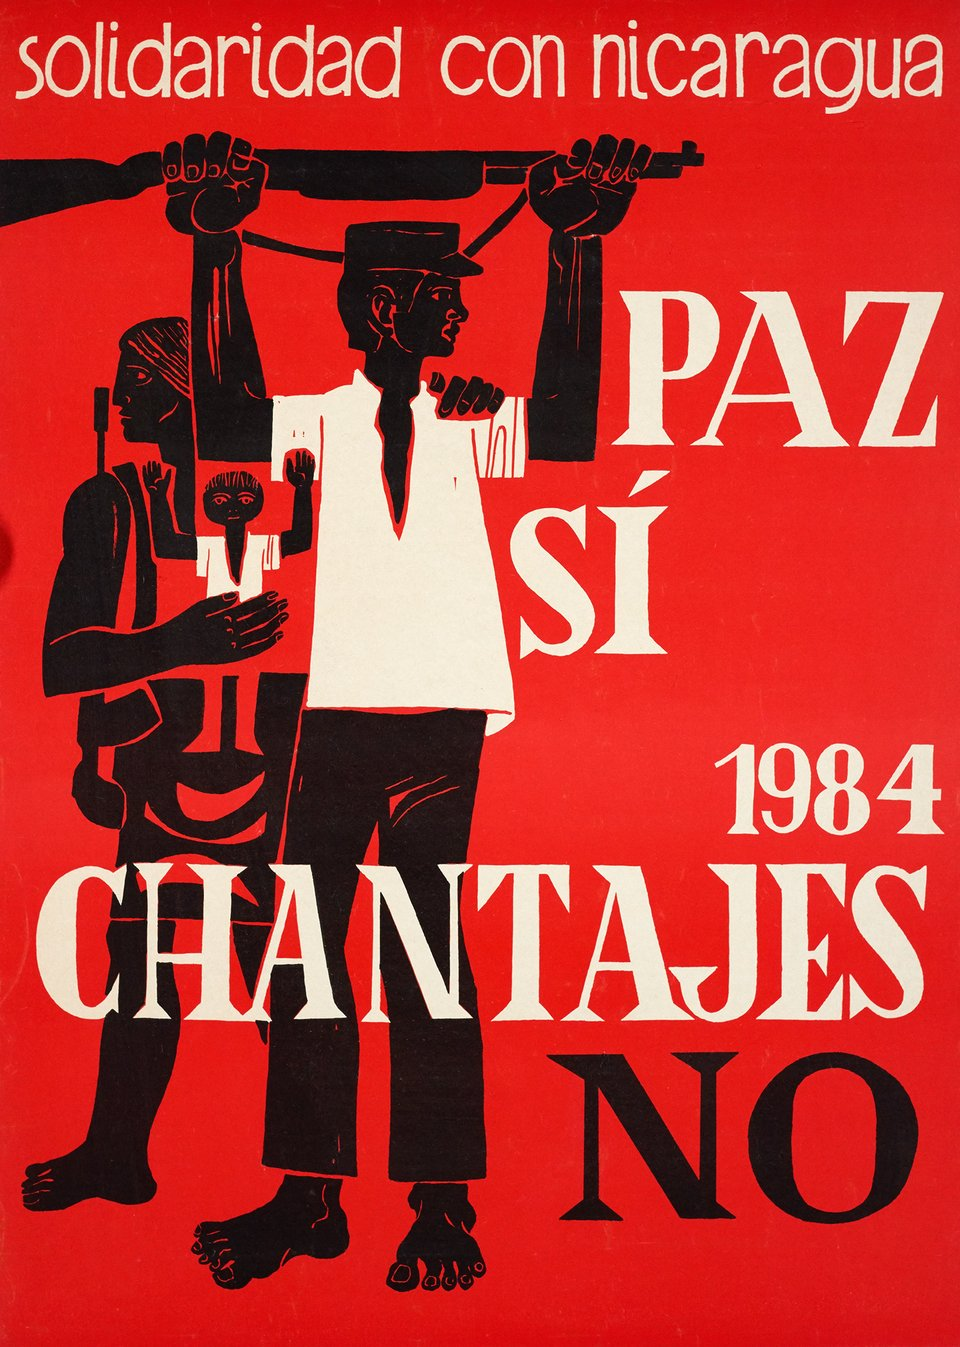 Paz si chantajes NO, Solidaridad con Nicaragua – Affiche ancienne –  ANONYME – 1984